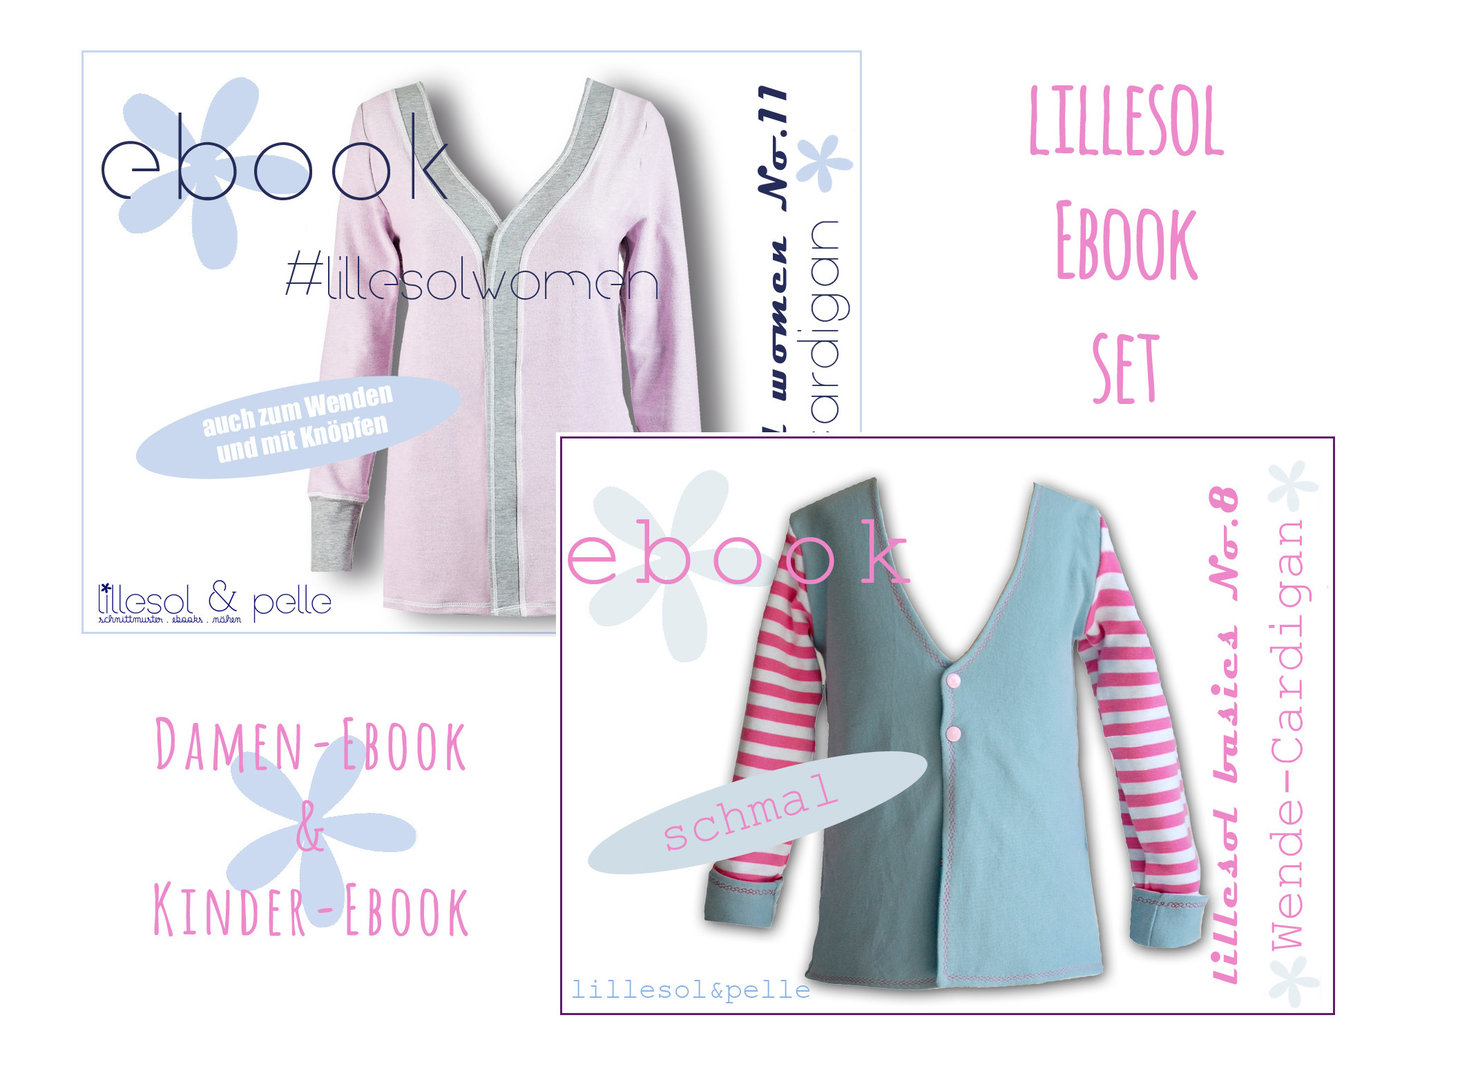 lillesol ebook set basic No.8 und women No.11 *mit Video-Anleitung*